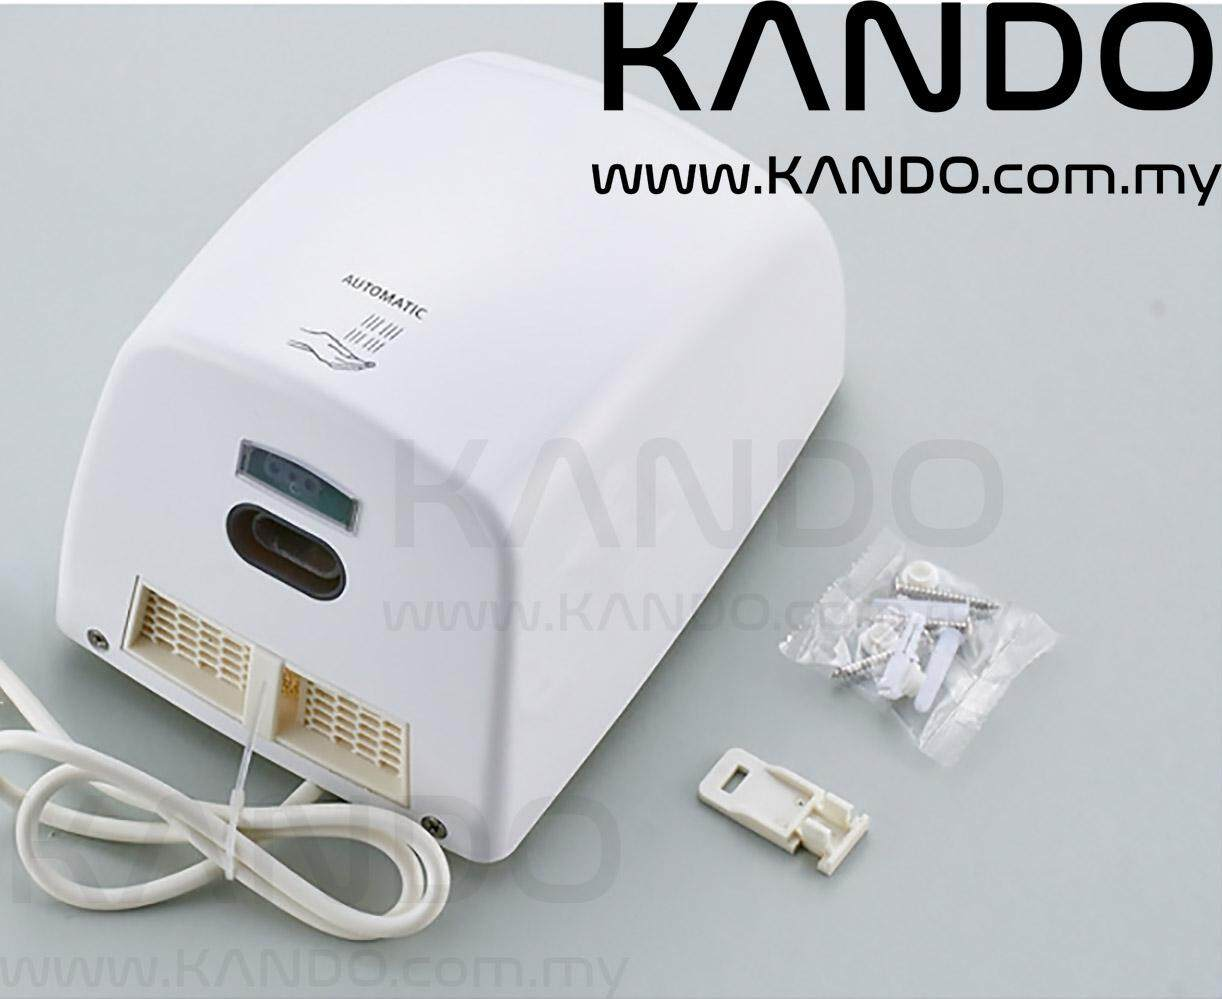 [MALAYSIA]Automatic Compact Hand Dryer 1000W with Infrared Sensor Air Drier Household Hand Drier 10 SECONDS DRYER